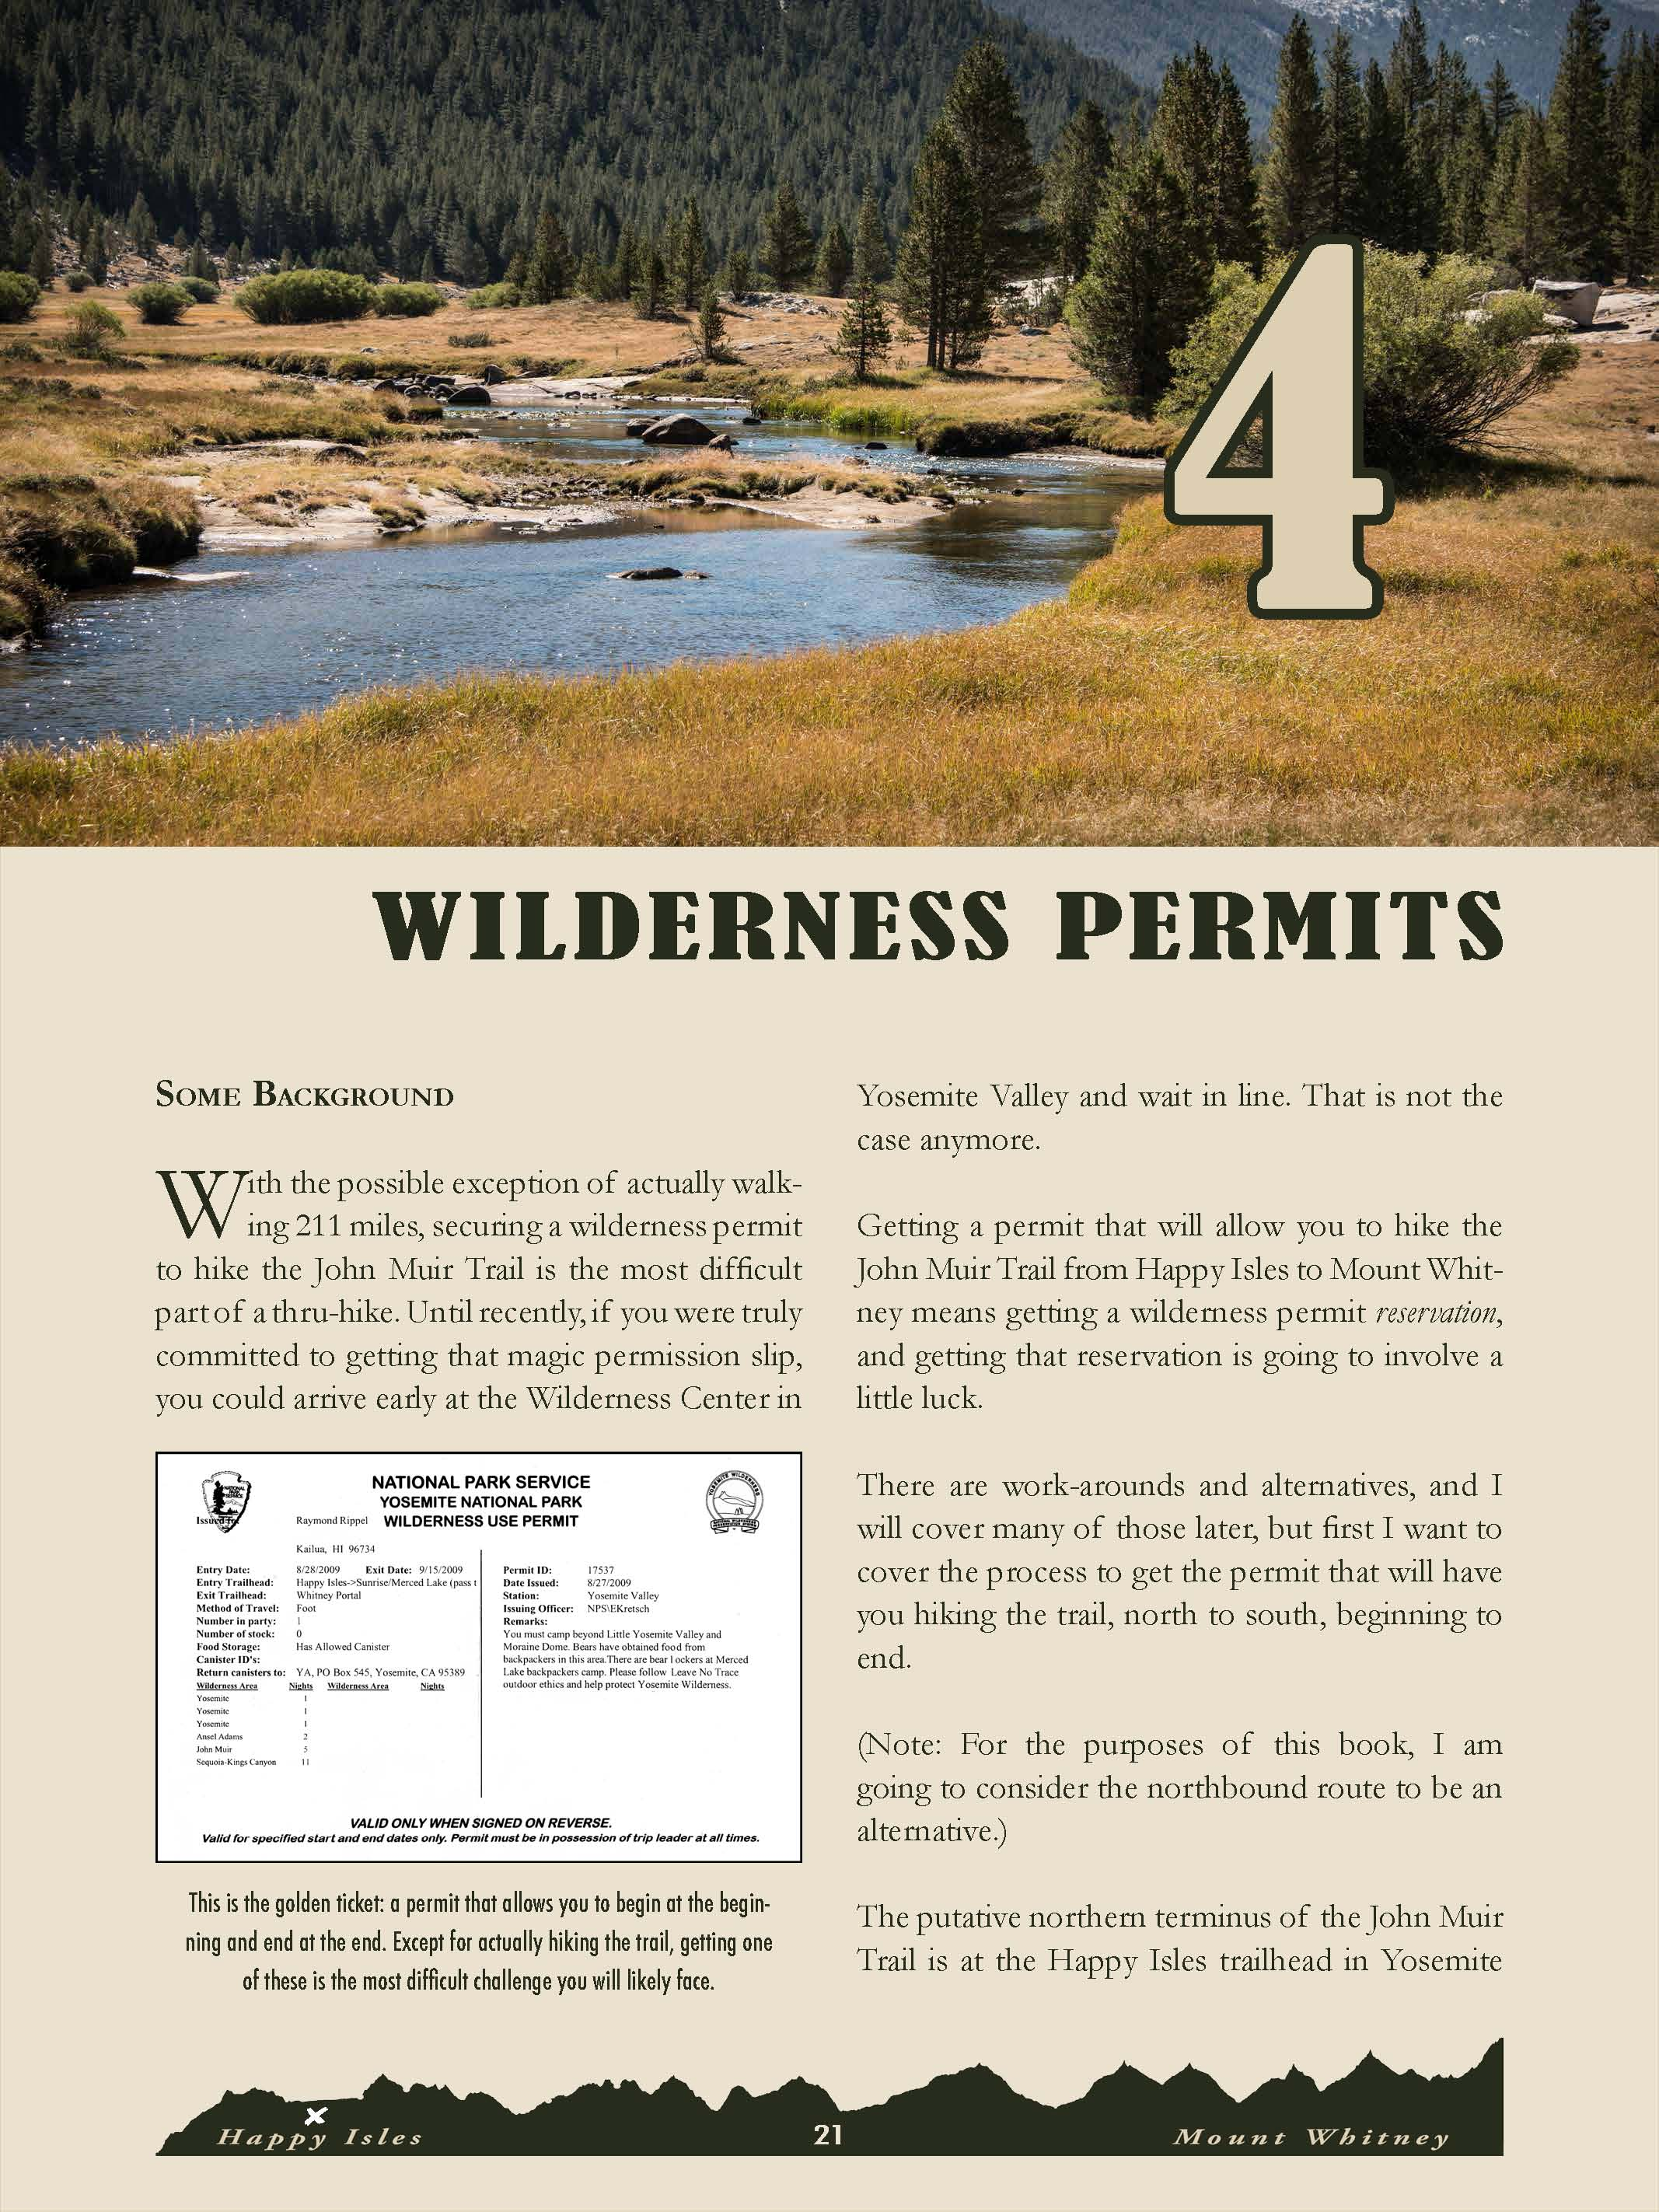 In-depth discussion of how to secure a wilderness permit. Essential information!